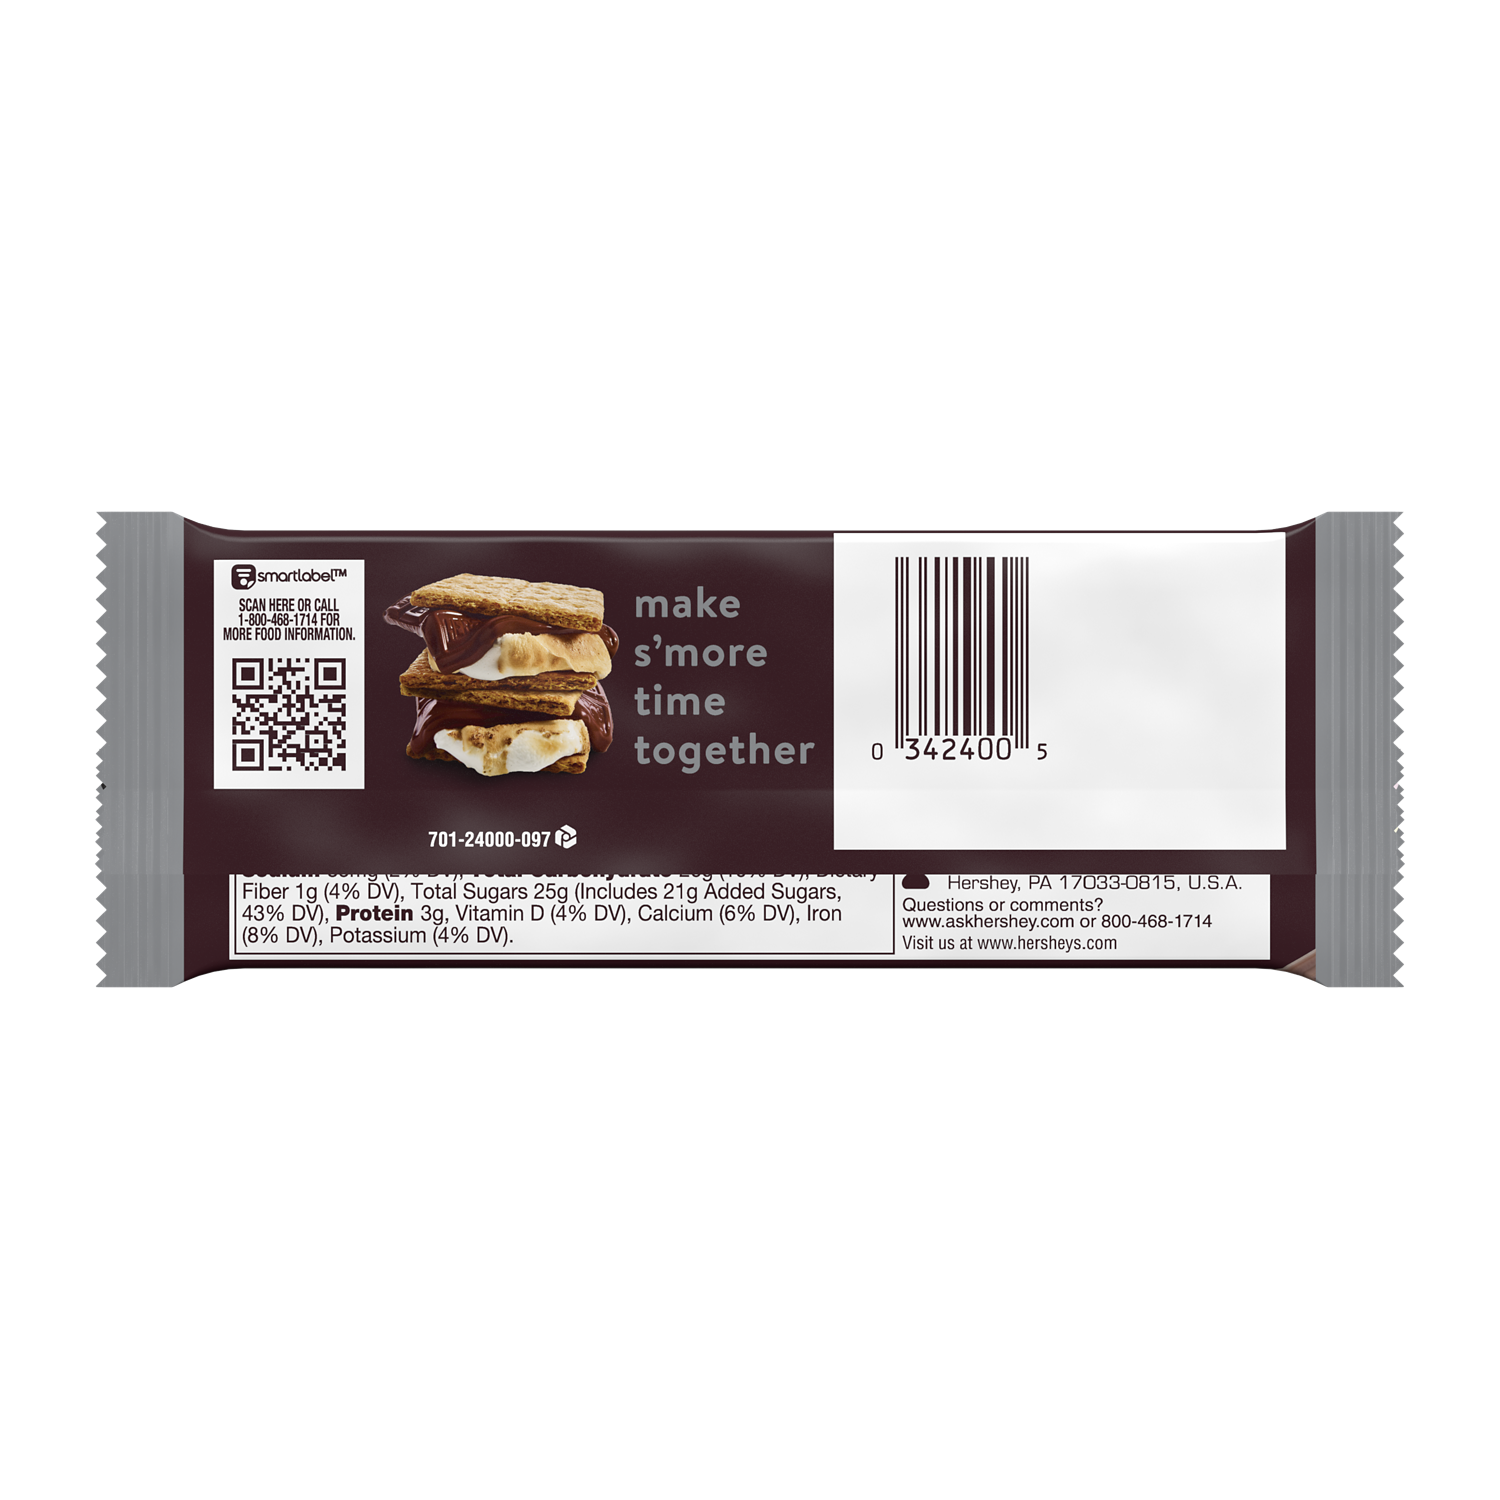 HERSHEY'S Milk Chocolate Candy Bar, 1.55 oz - Back of Package